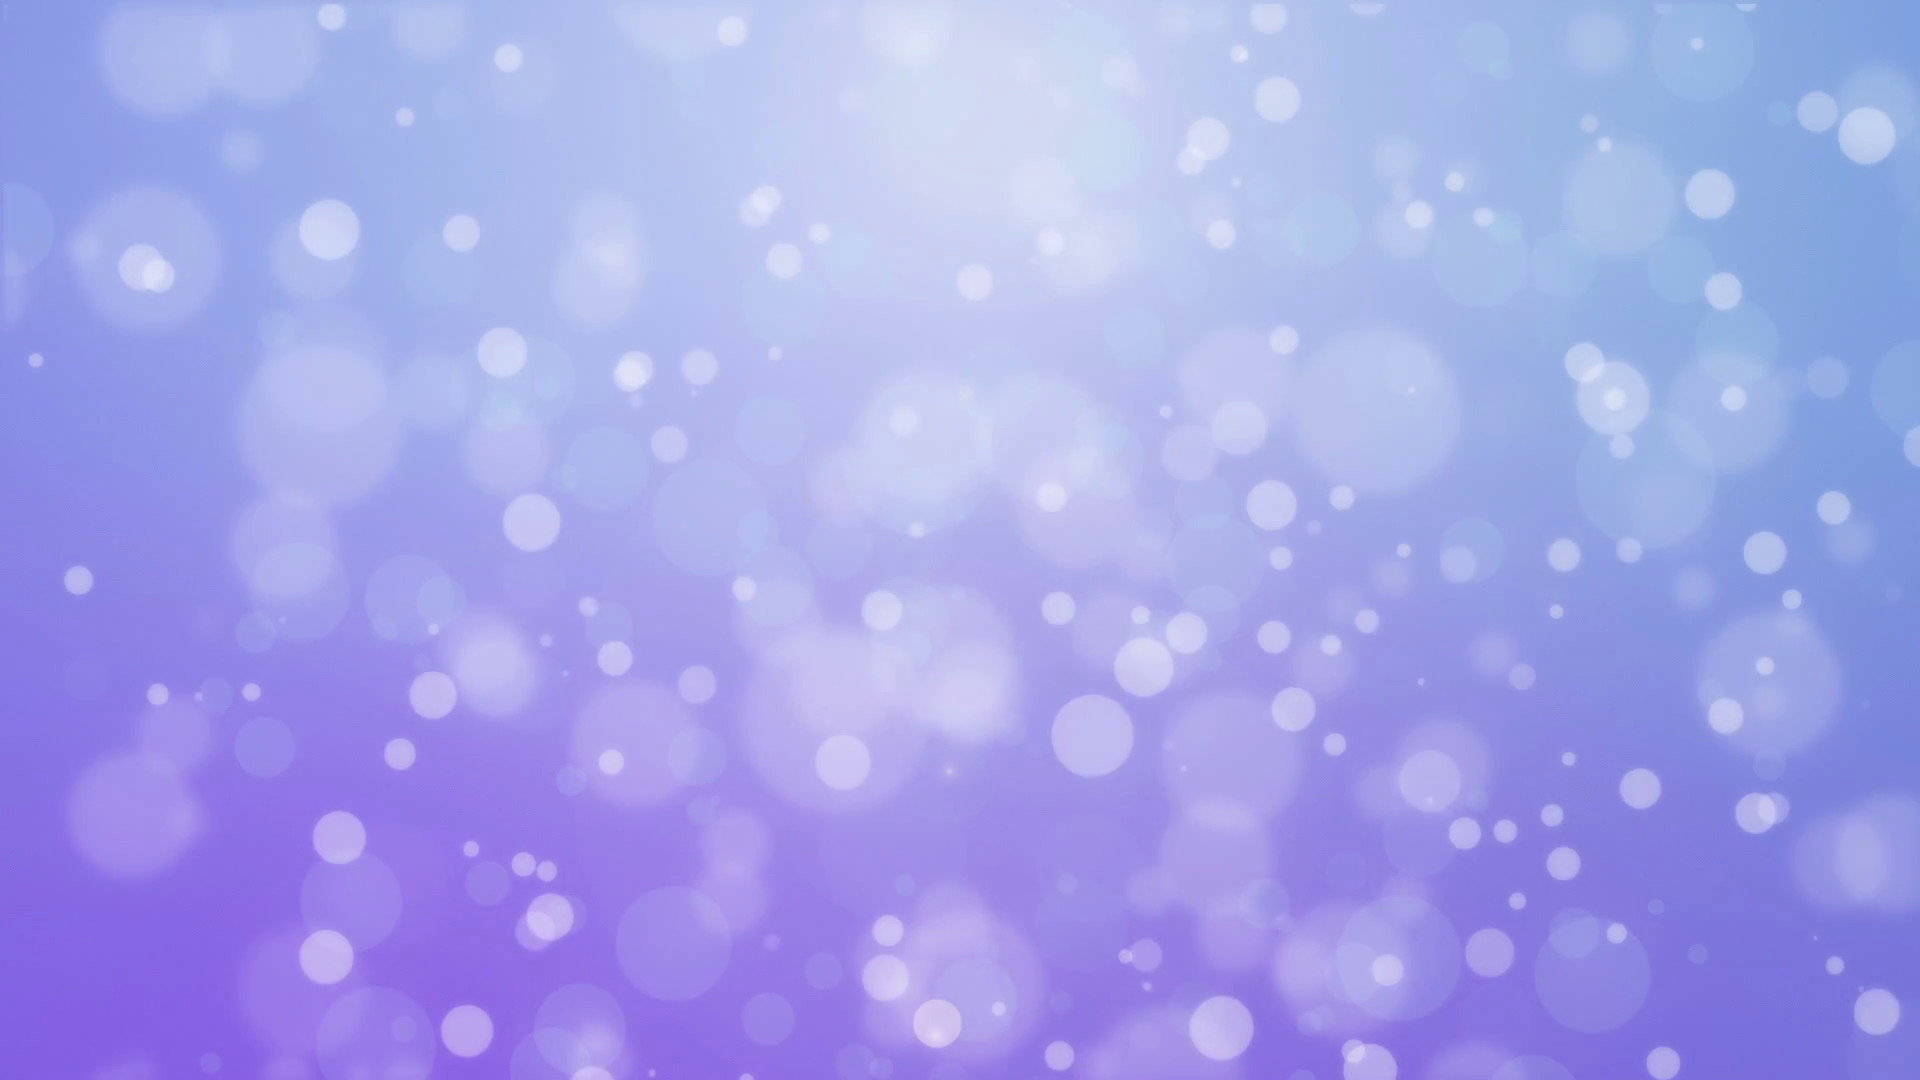 1920x1080 Dreamy purple blue gradient animated background with floating glowing bokeh  lights